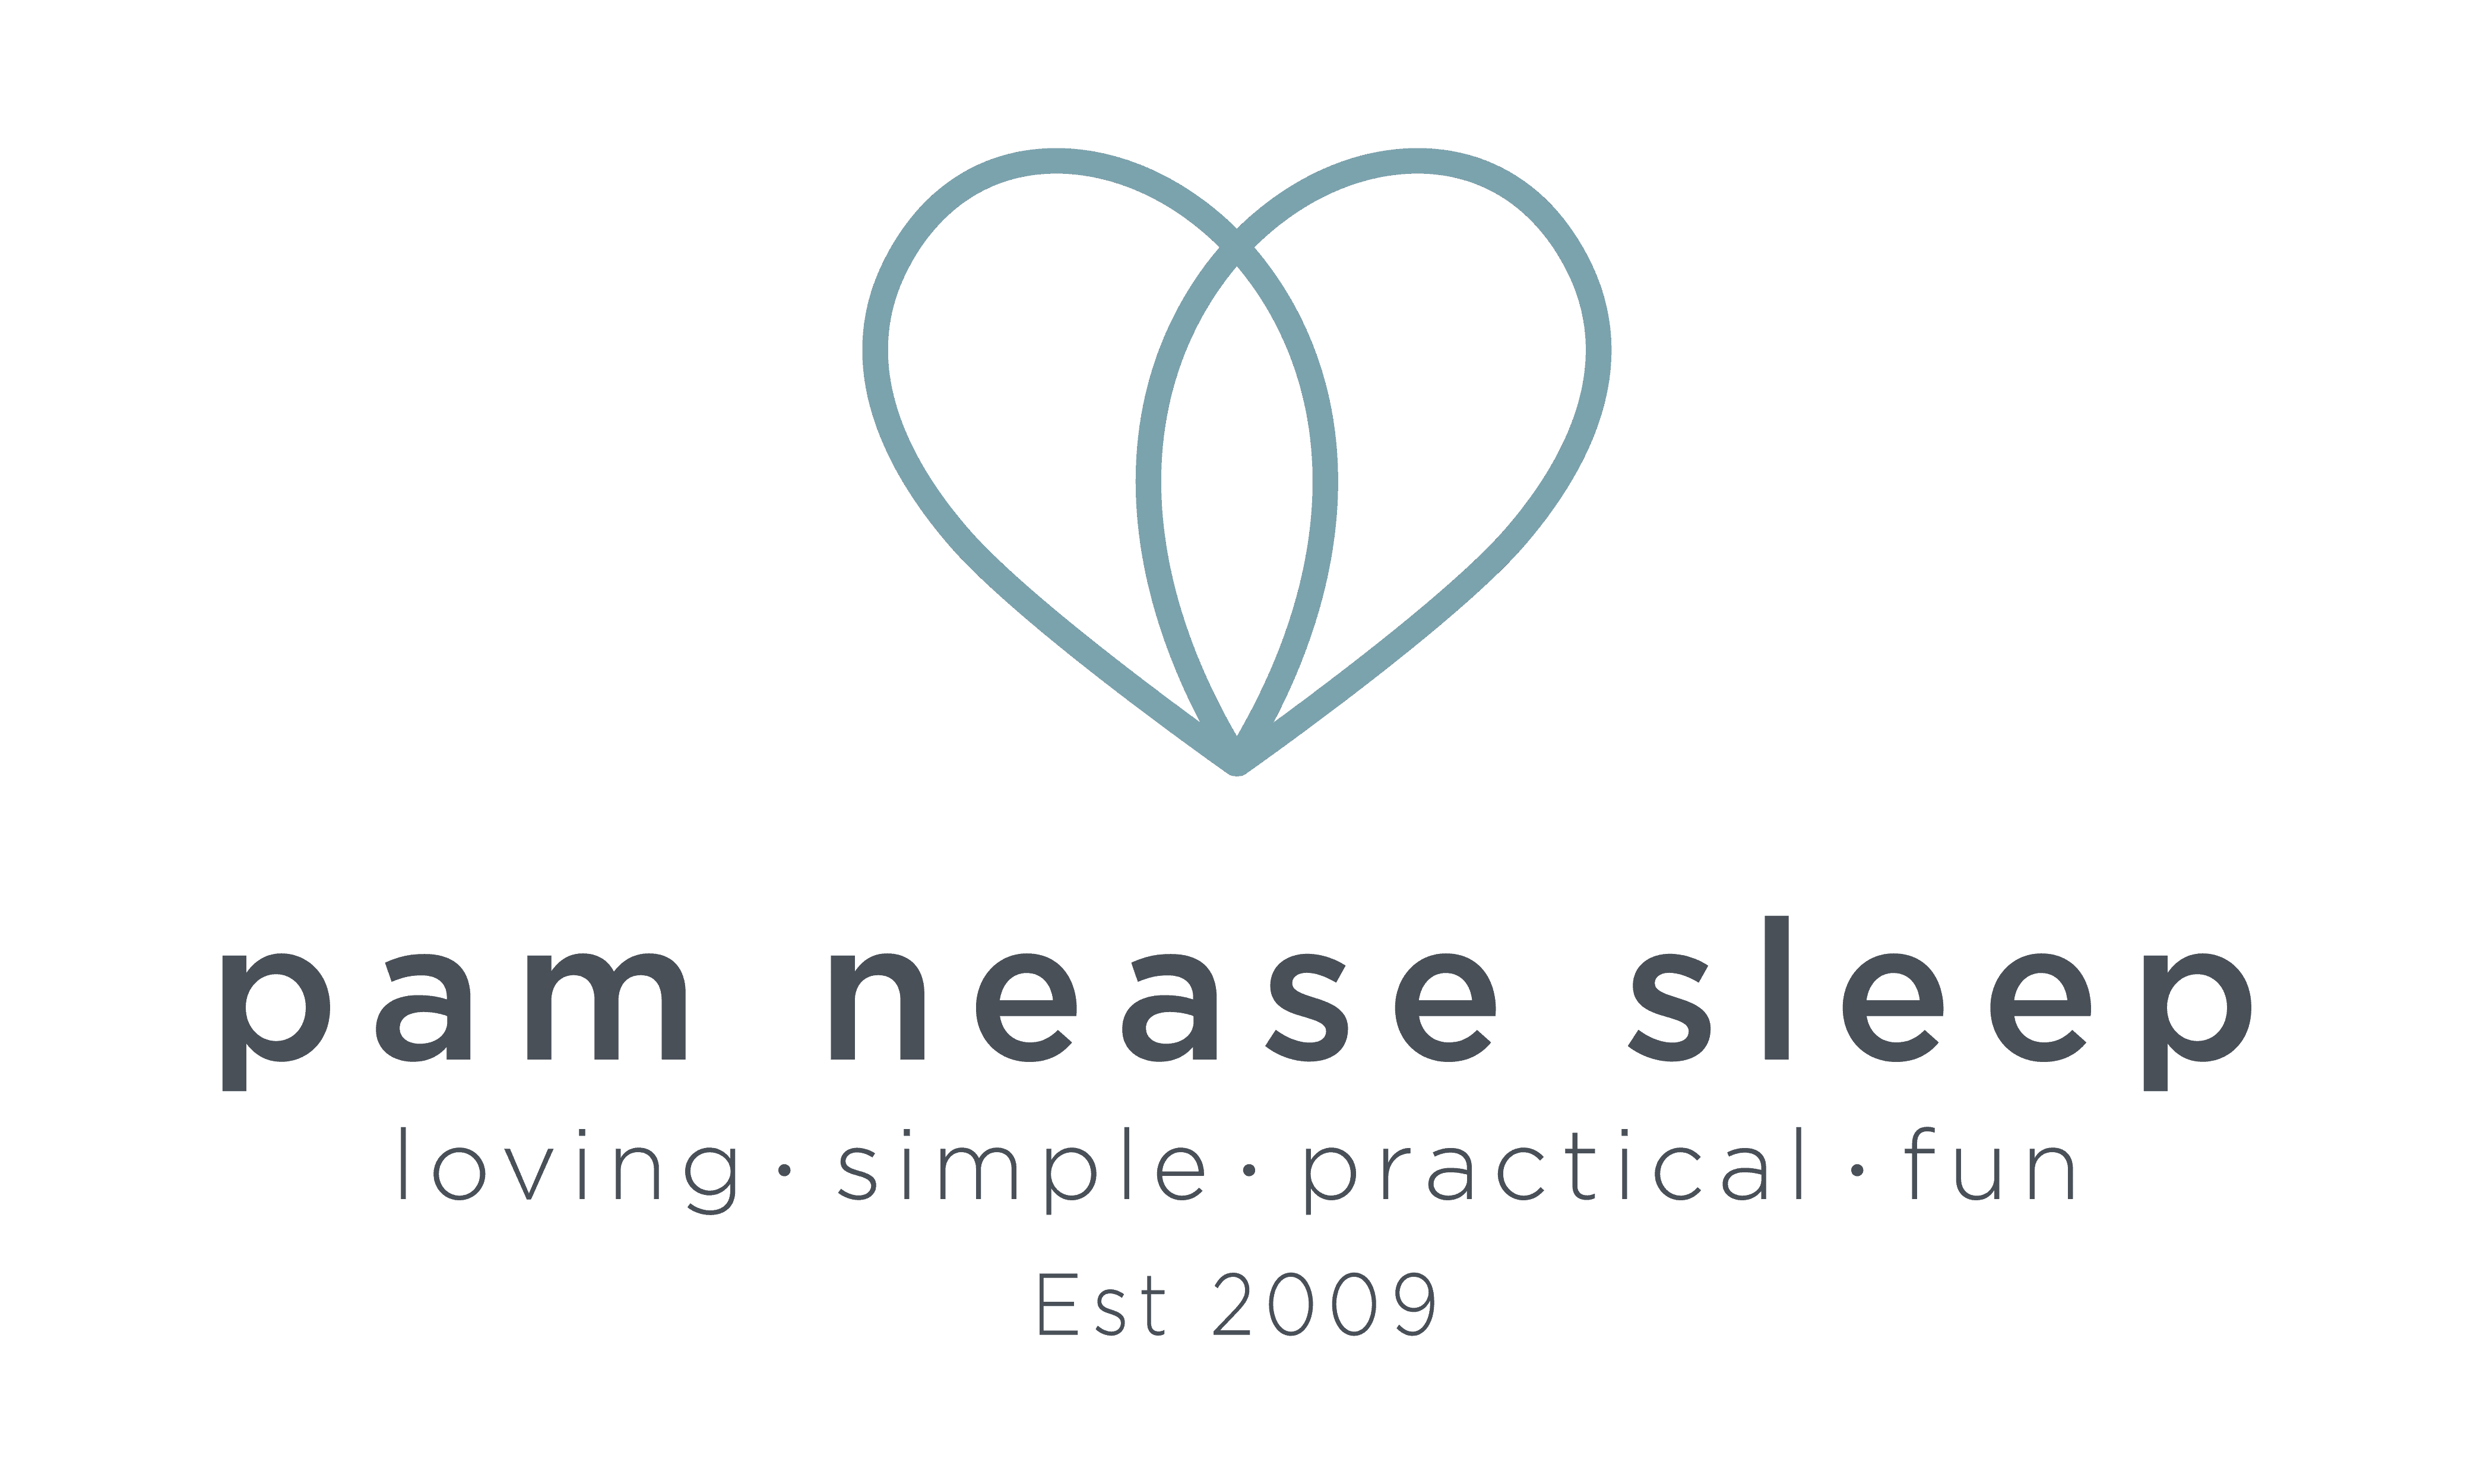 Sleep Training Expert Pam Nease